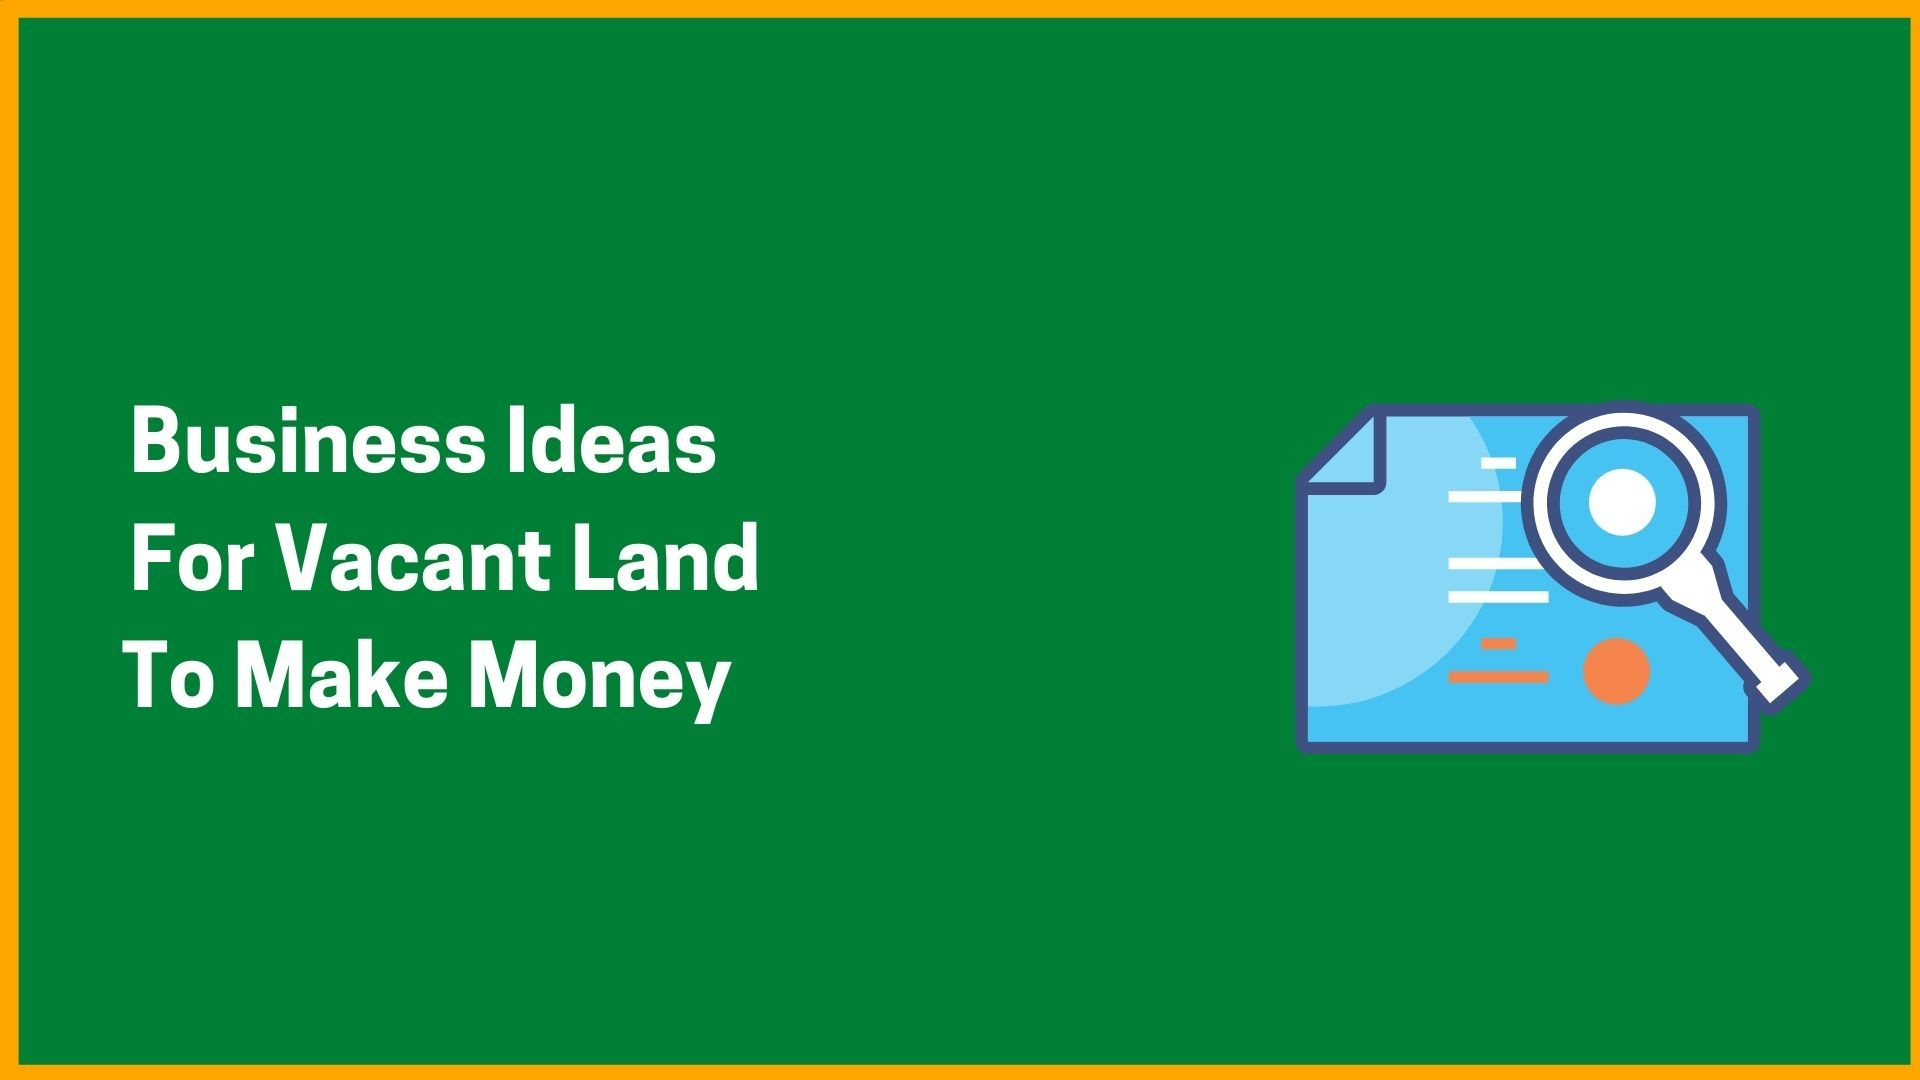 Business Ideas For Vacant Land To Make Money